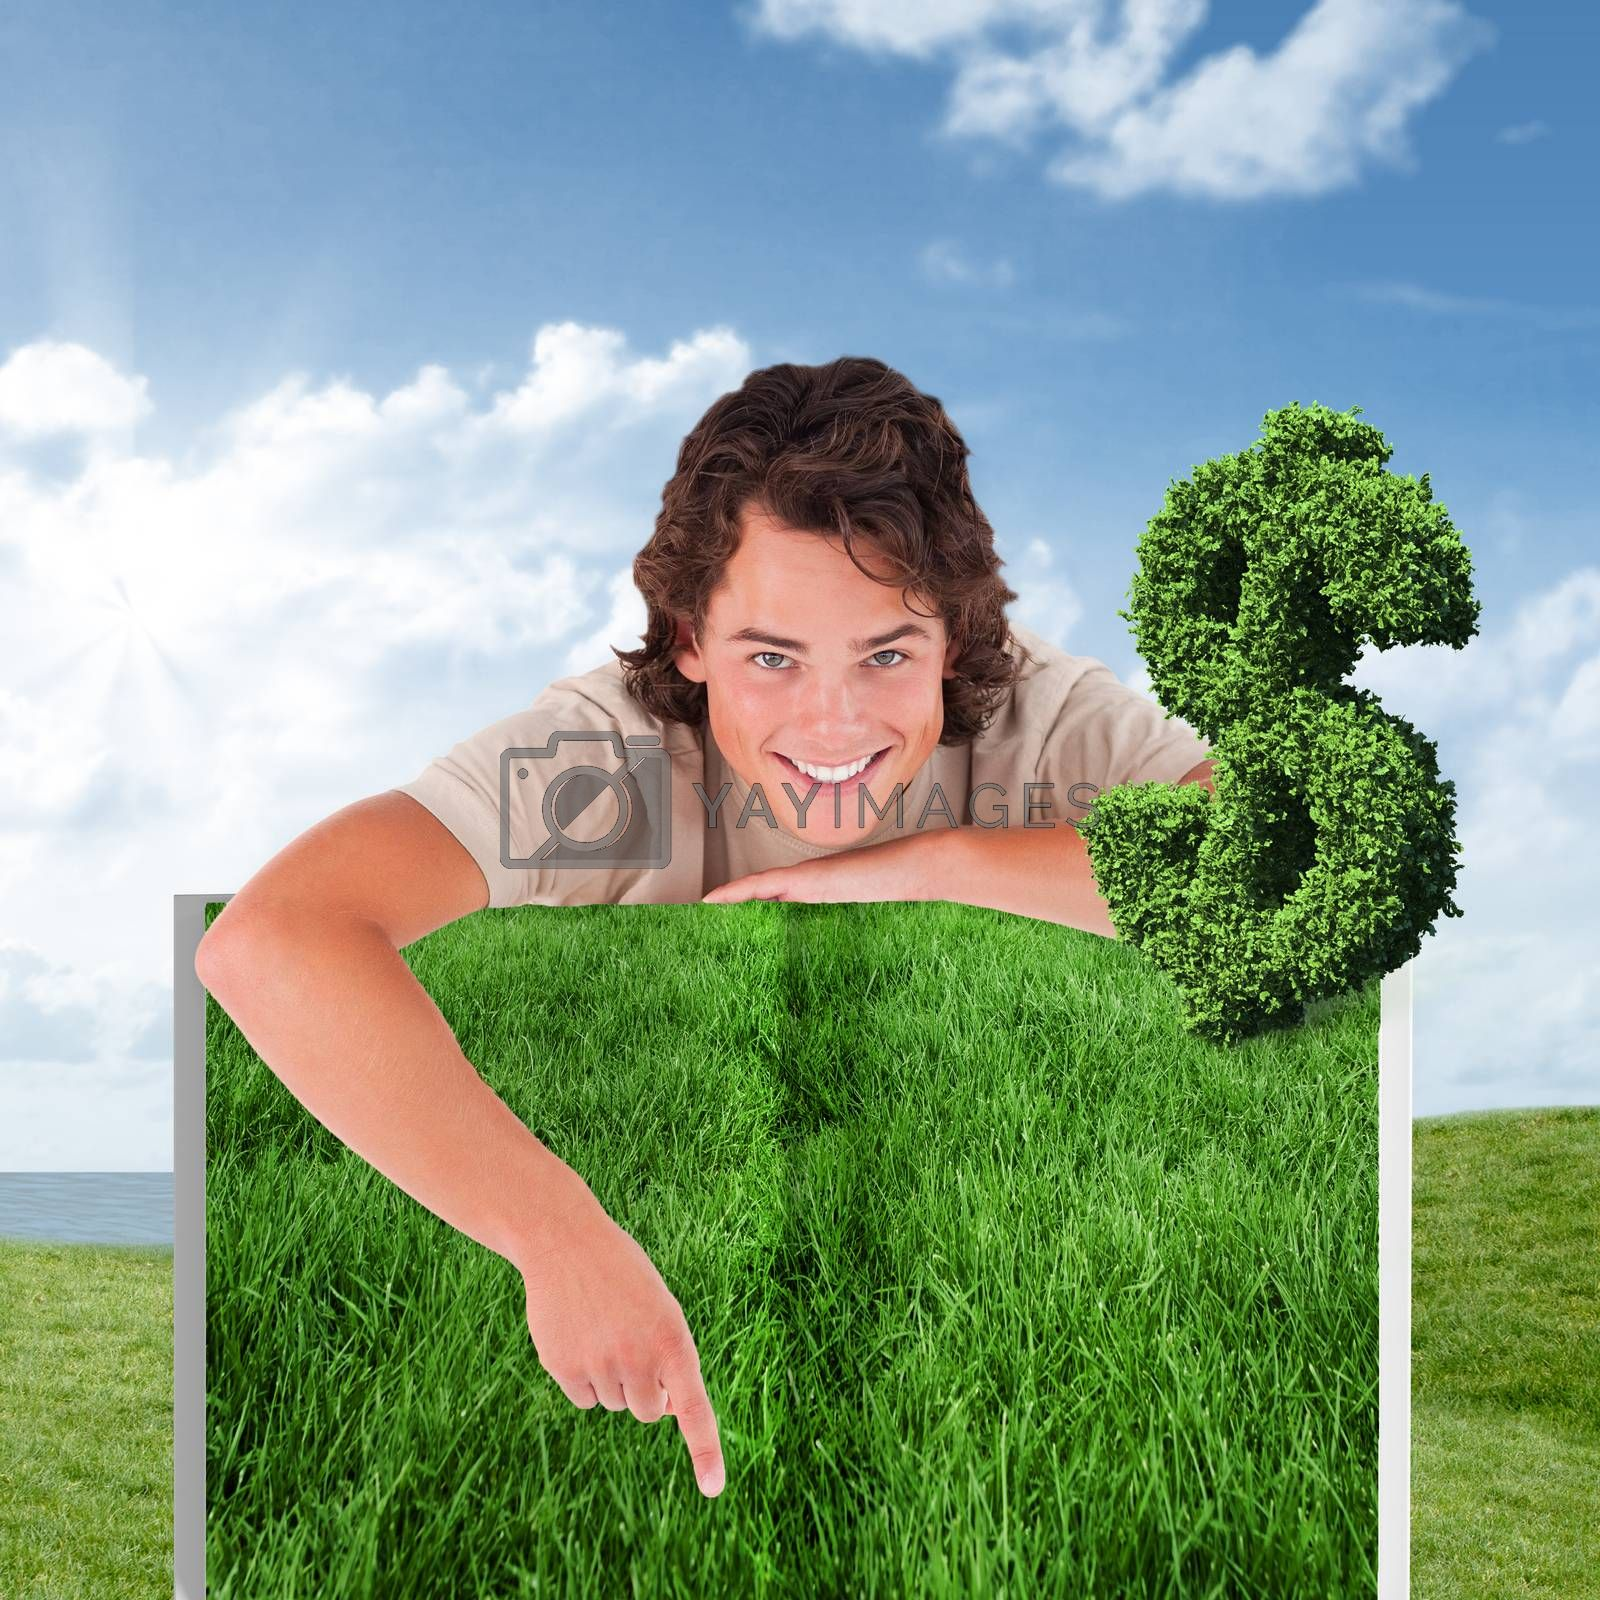 Person pointing against green field under blue sky